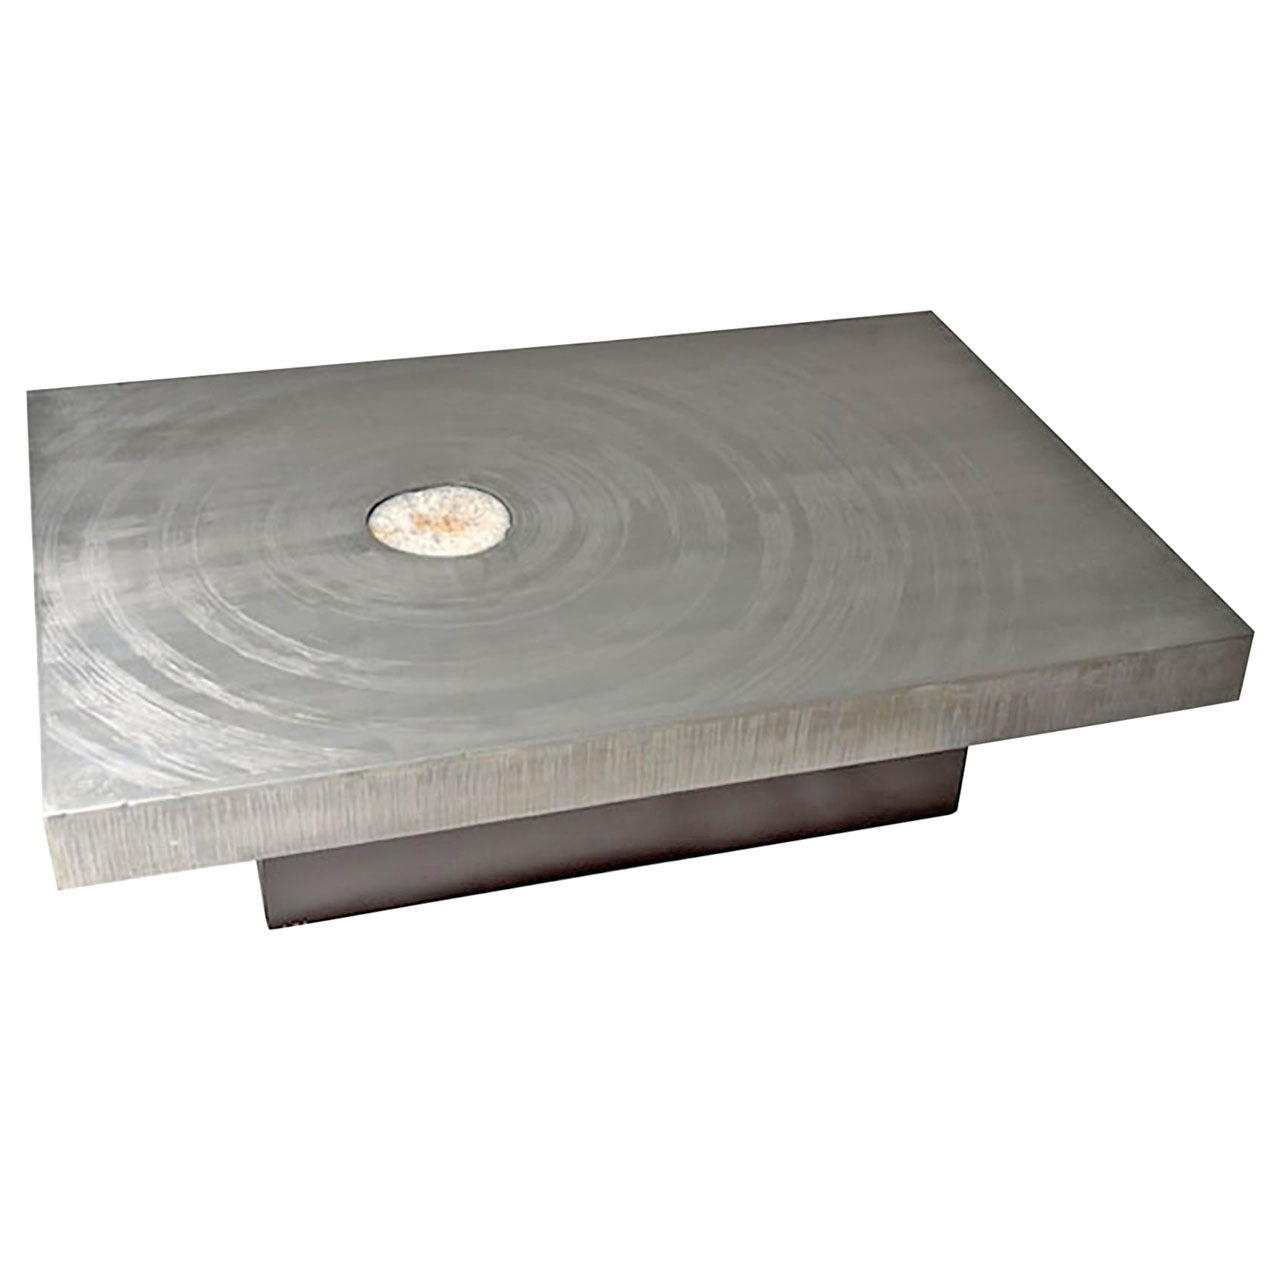 Marc D'haenens Belgian Modern Etched Aluminum and Agate Coffee Table